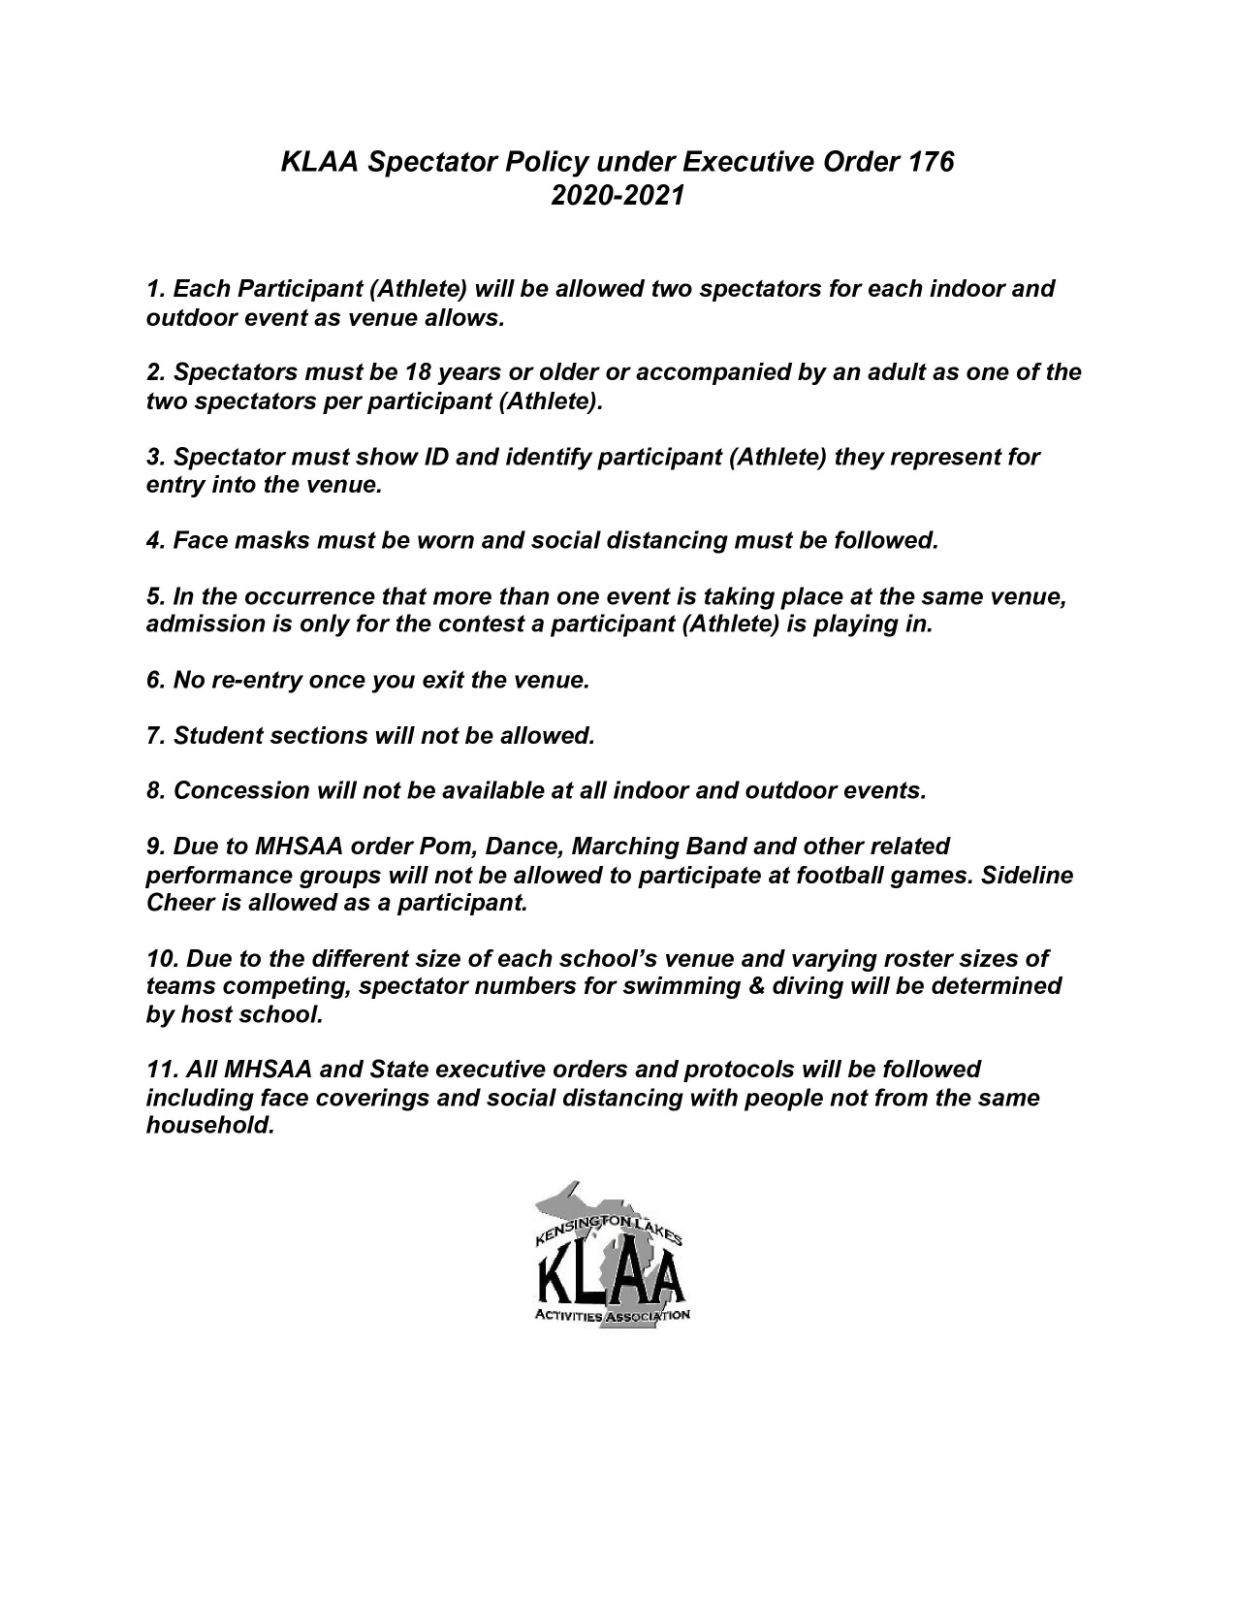 KLAA Spectator Policy under Executive Order 176 2020-2021 1. Each Participant (Athlete) will be allowed two spectators for each indoor and outdoor event as venue allows. 2. Spectators must be 18 years or older or accompanied by an adult as one of the two spectators per participant (Athlete). 3. Spectator must show ID and identify participant (Athlete) they represent for entry into the venue. 4. Face masks must be worn and social distancing must be followed. 5. In the occurrence that more than one event is taking place at the same venue, admission is only for the contest a participant (Athlete) is playing in. 6. No re-entry once you exit the venue. 7. Student sections will not be allowed. 8. Concession will not be available at all indoor and outdoor events. 9. Due to MHSAA order Pom, Dance, Marching Band and other related performance groups will not be allowed to participate at football games. Sideline Cheer is allowed as a participant. 10. Due to the different size of each school's venue and varying roster sizes of teams competing, spectator numbers for swimming & diving will be determined by host school. 11. All MHSAA and State executive orders and protocols will be followed including face coverings and social distancing with people not from the same household.